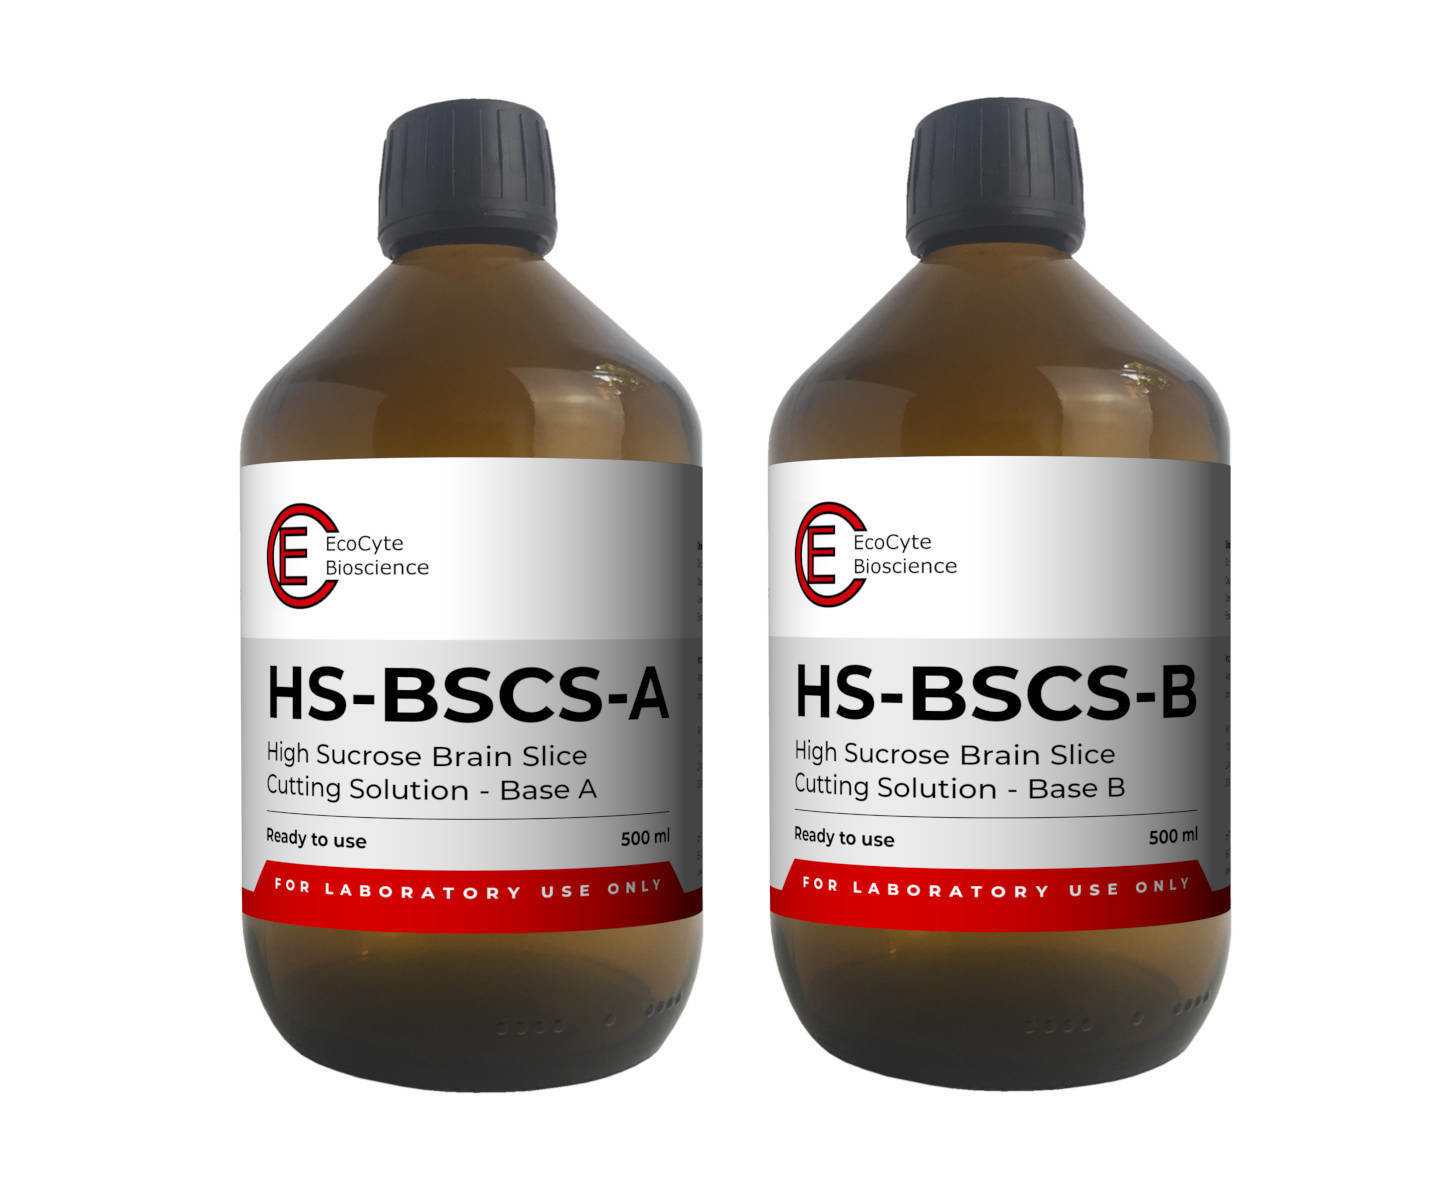 HS-BSCS – High Sucrose Brain Slice Cutting Solution